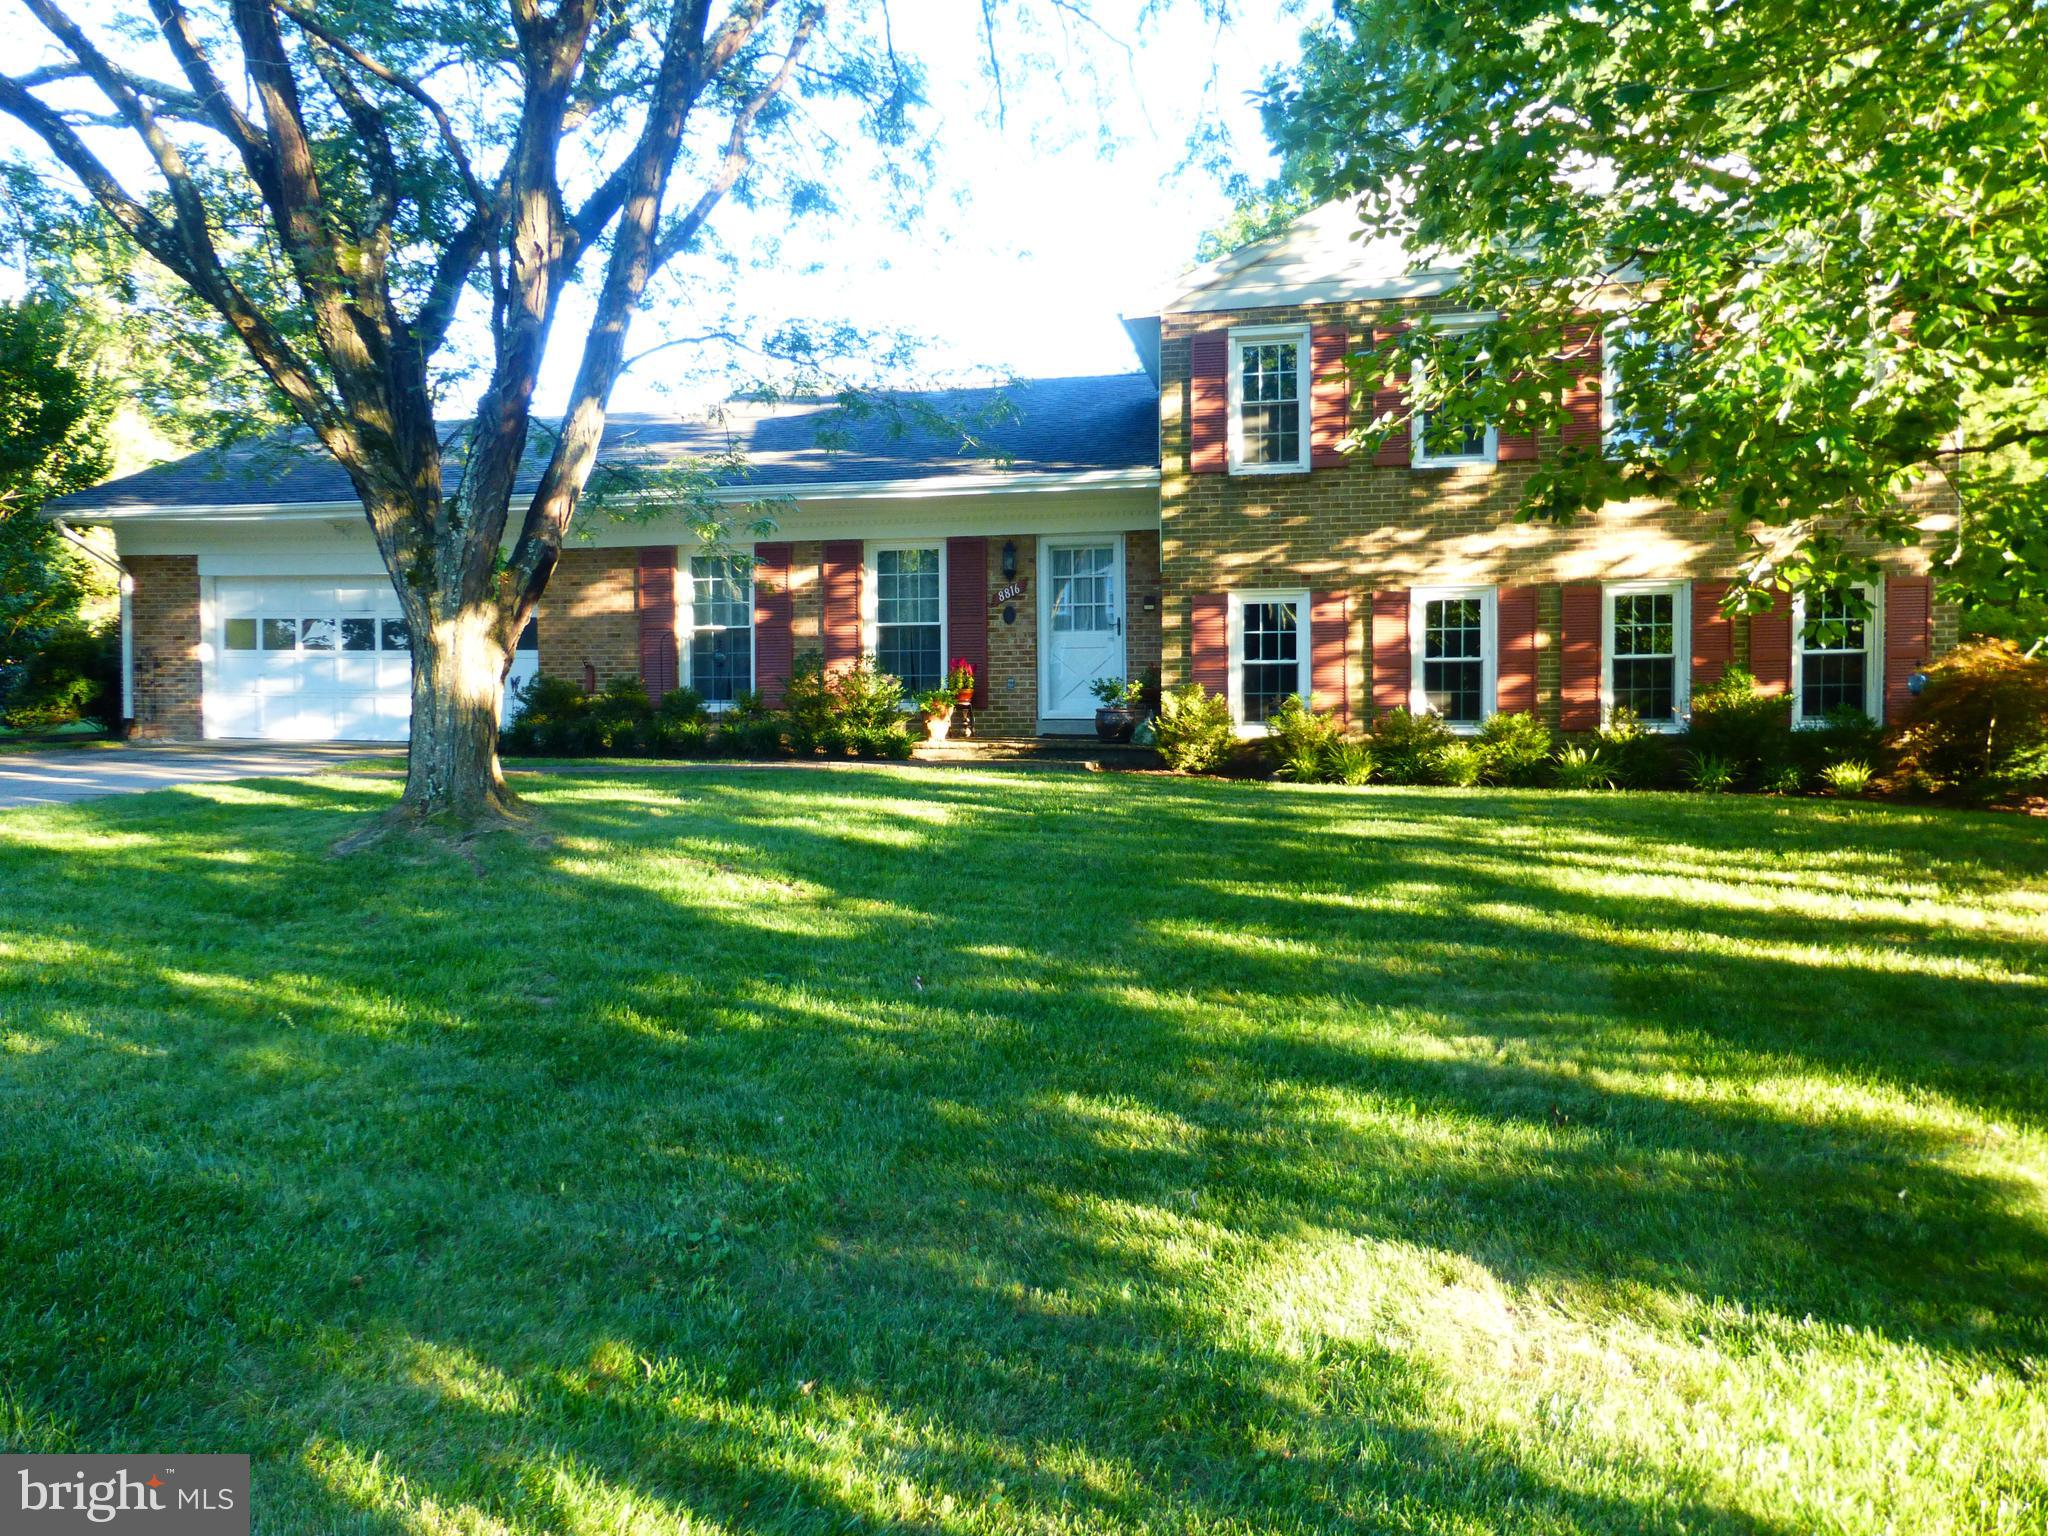 Best rental, perfect location & perfectly updated. 2 car garage, 5 bdrms, 3 full baths great yard & minutes walk to Potomac River bike path, Ft Hunt Park, elementary or middle schools. Will only consider pets on a case by case basis.Avail Jan. 6, 2019. Owner works from home occasionally, so while on Sentrilock, agents must contact List Agt.